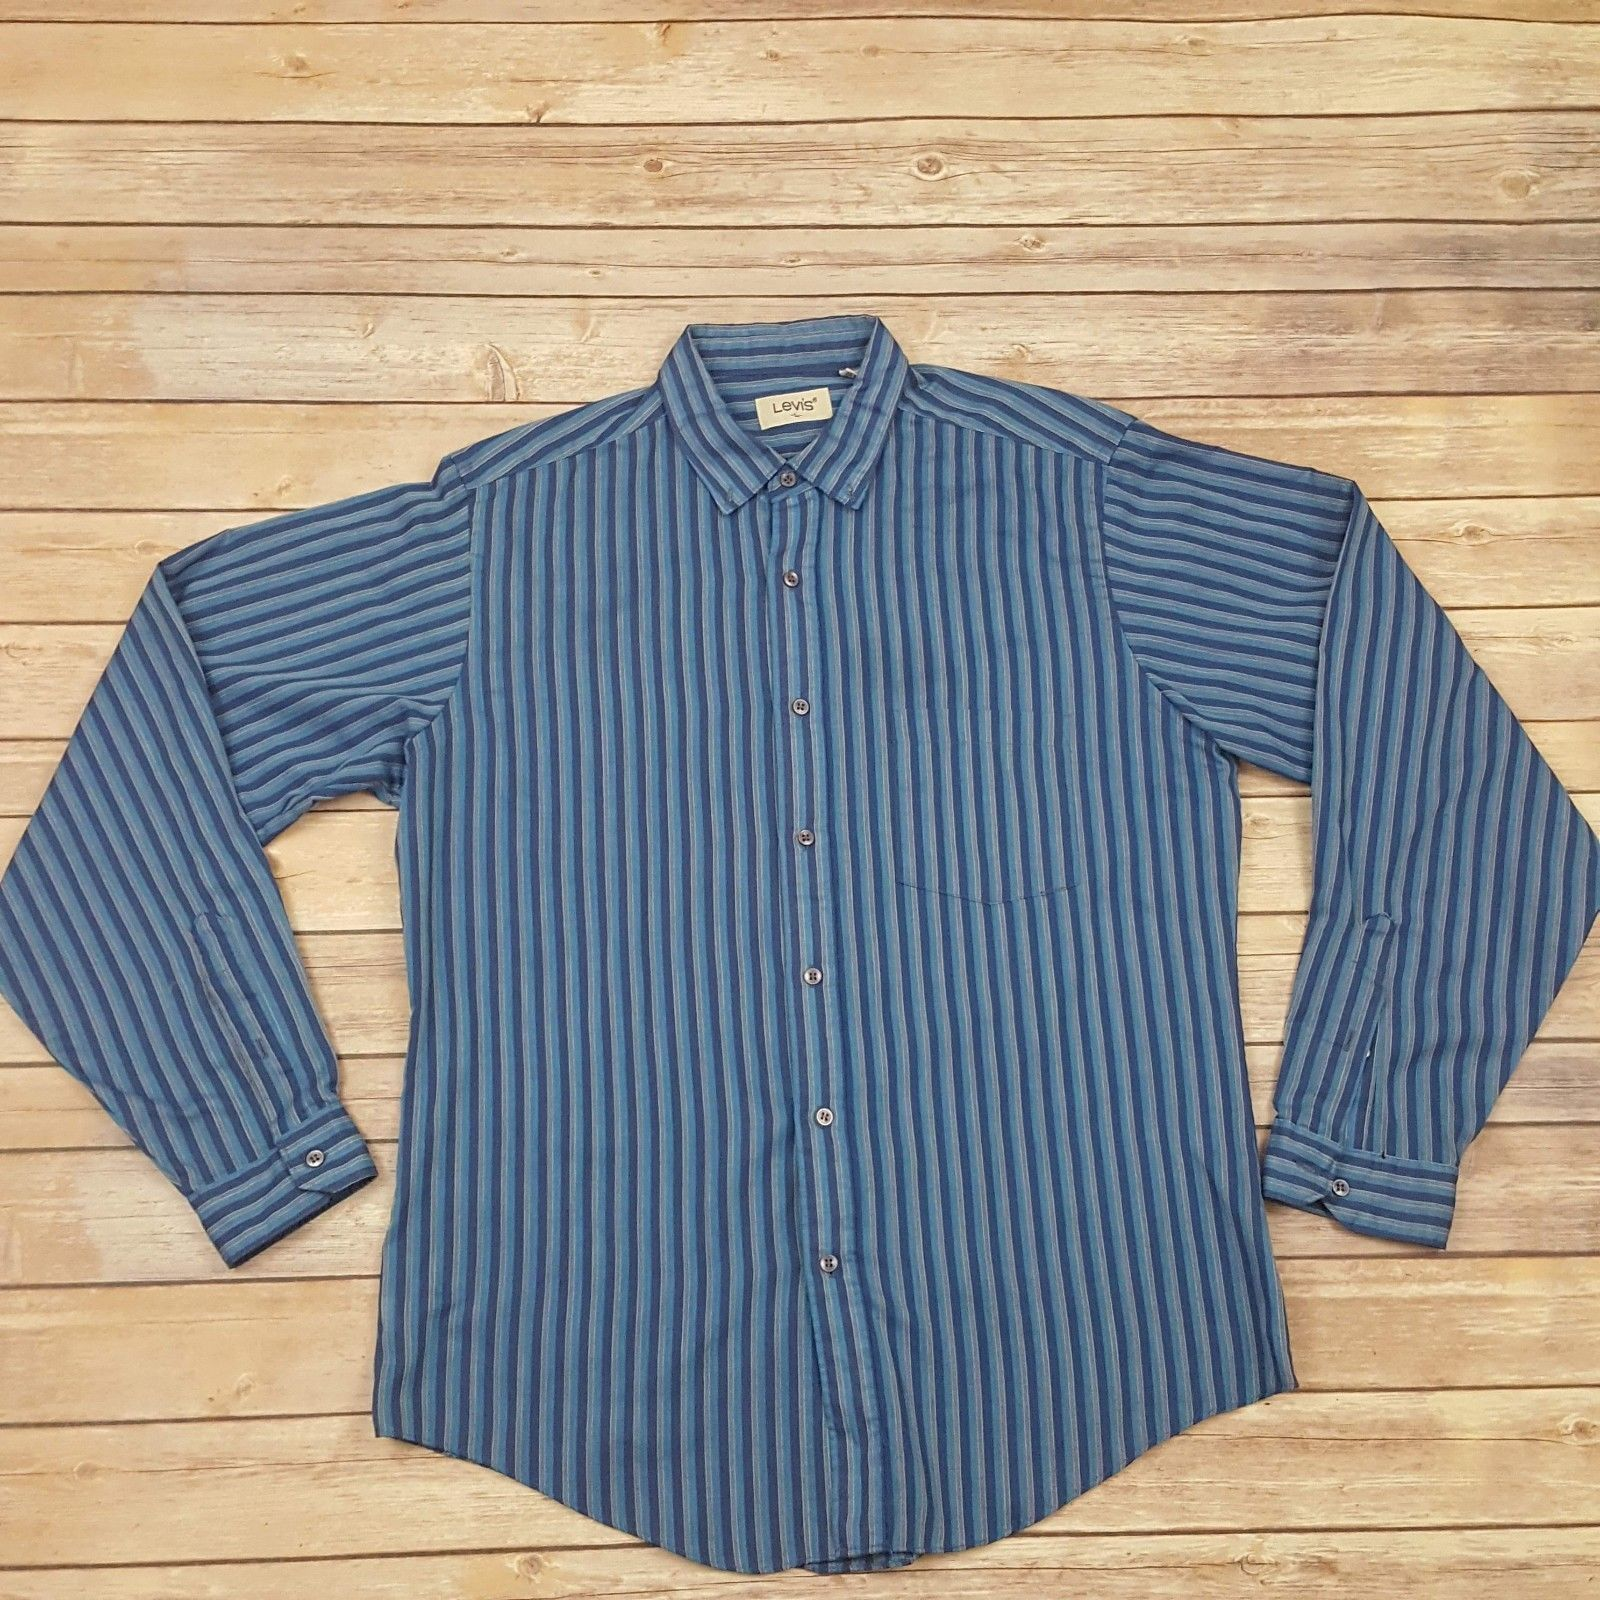 Primary image for Mens Levis Button Down Shirt Size Large Vertical Stripes.